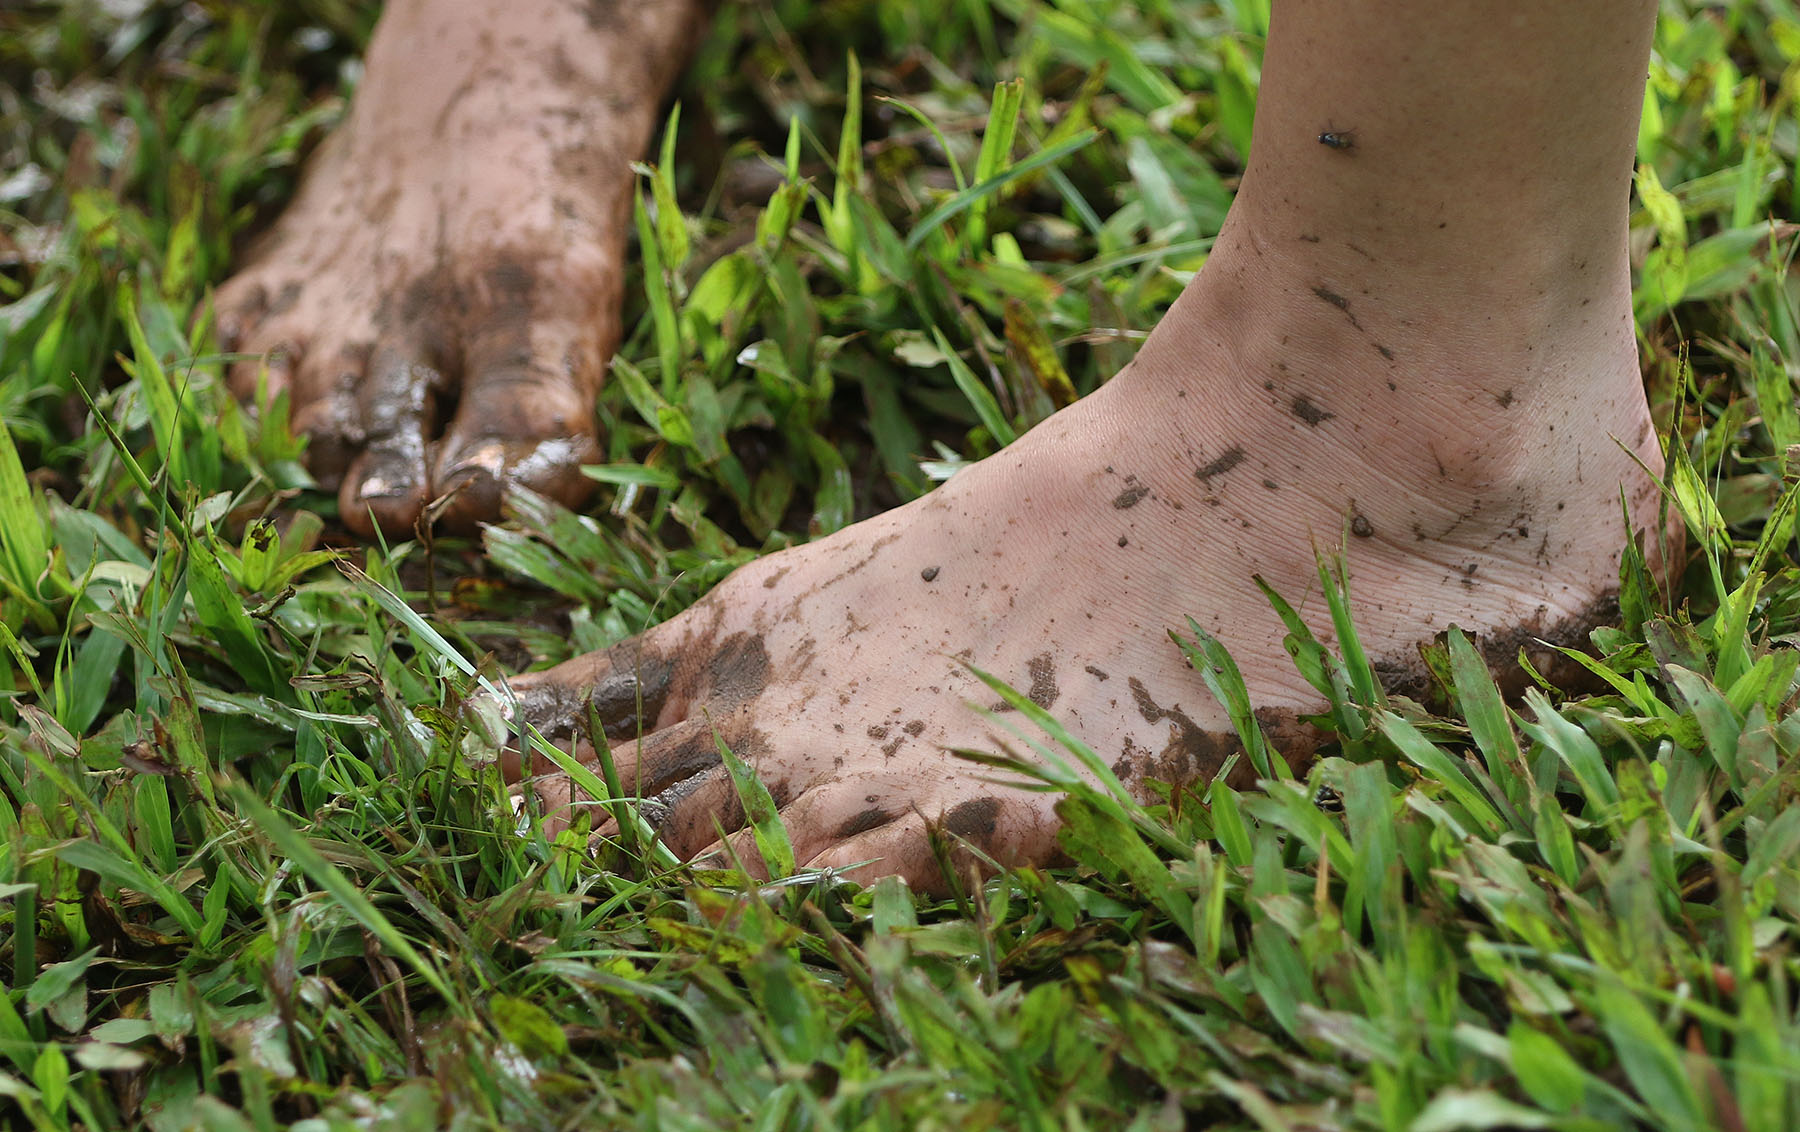 <p>One of the visitors to Ho'oulu 'Aina Nature Park goes barefoot in muddy grass.</p>